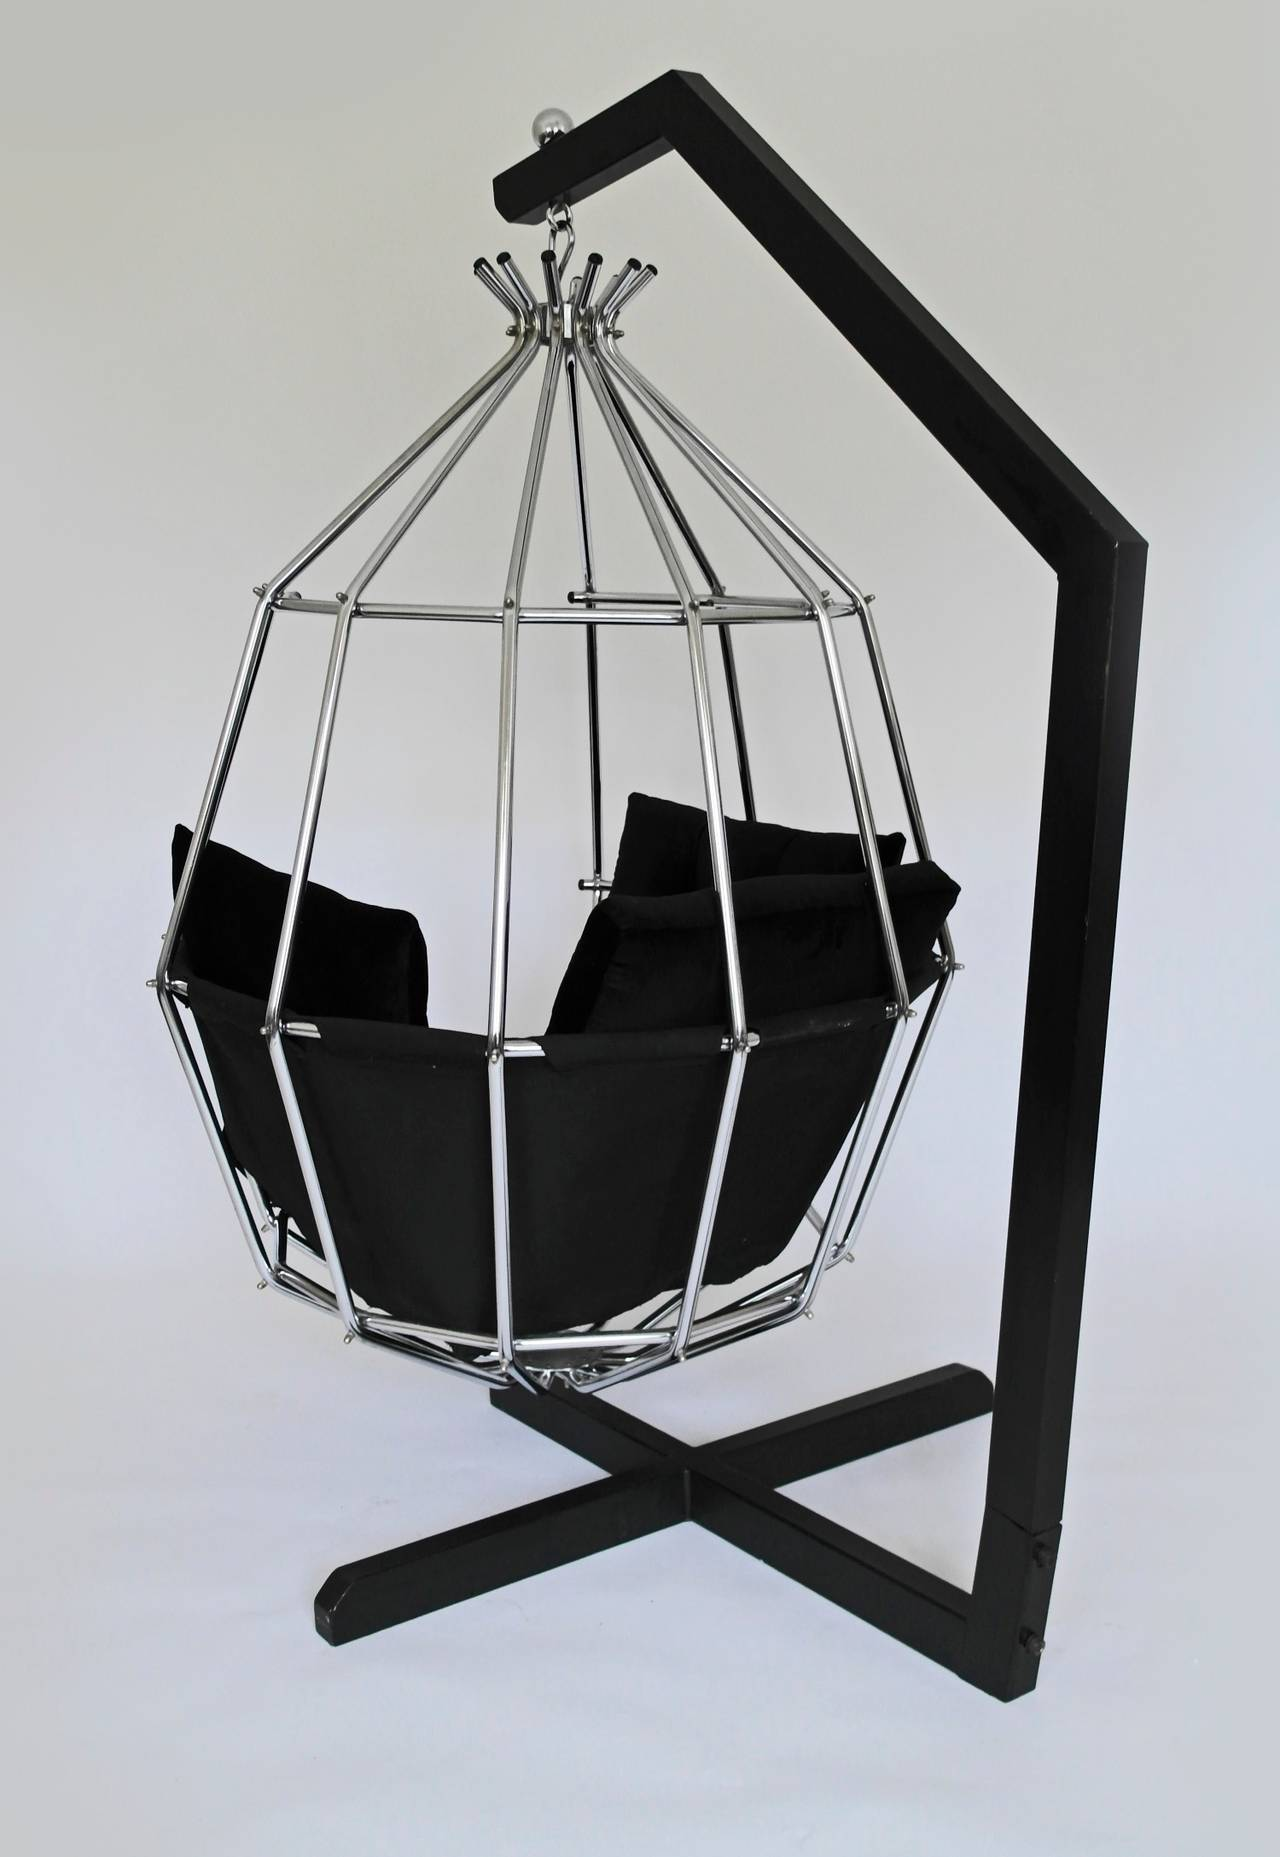 Swedish Retro 1970s Hanging Birdcage Chair by Ib Arberg, Arbre Designs Parrot Chair For Sale